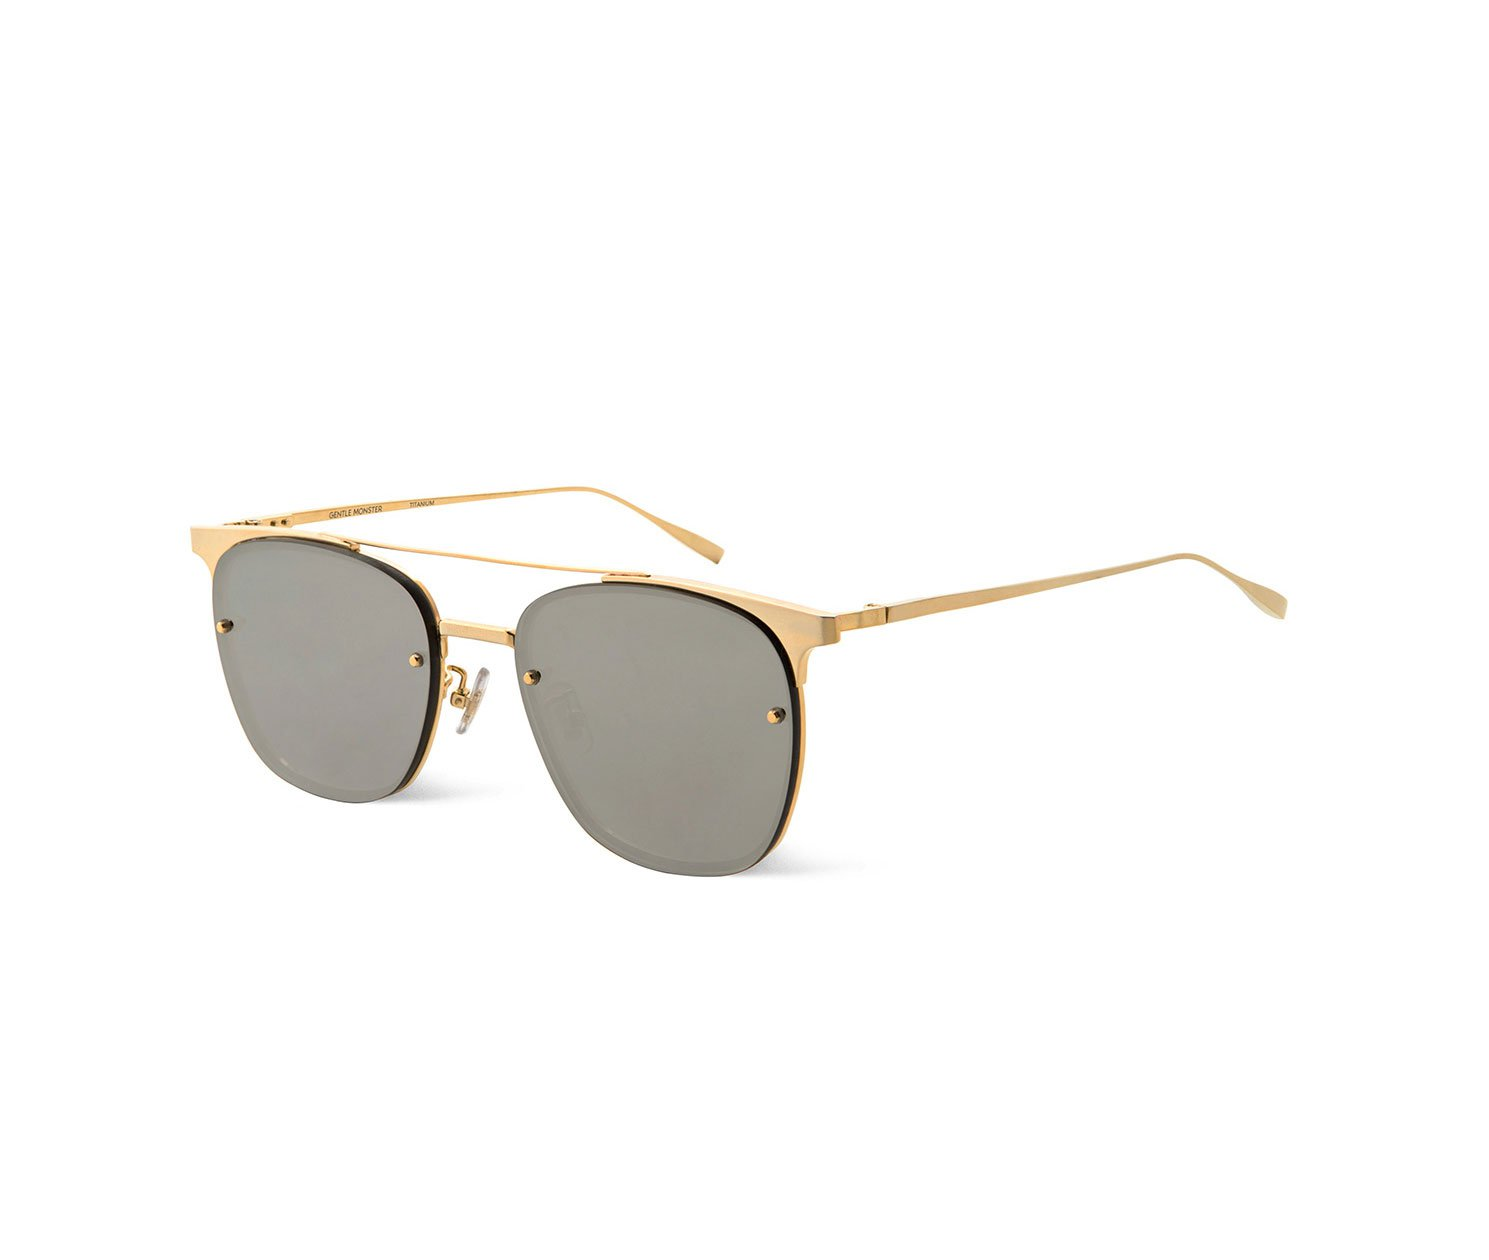 Sunglasses Gentle Monster Fame 03m Unisex Gold Square